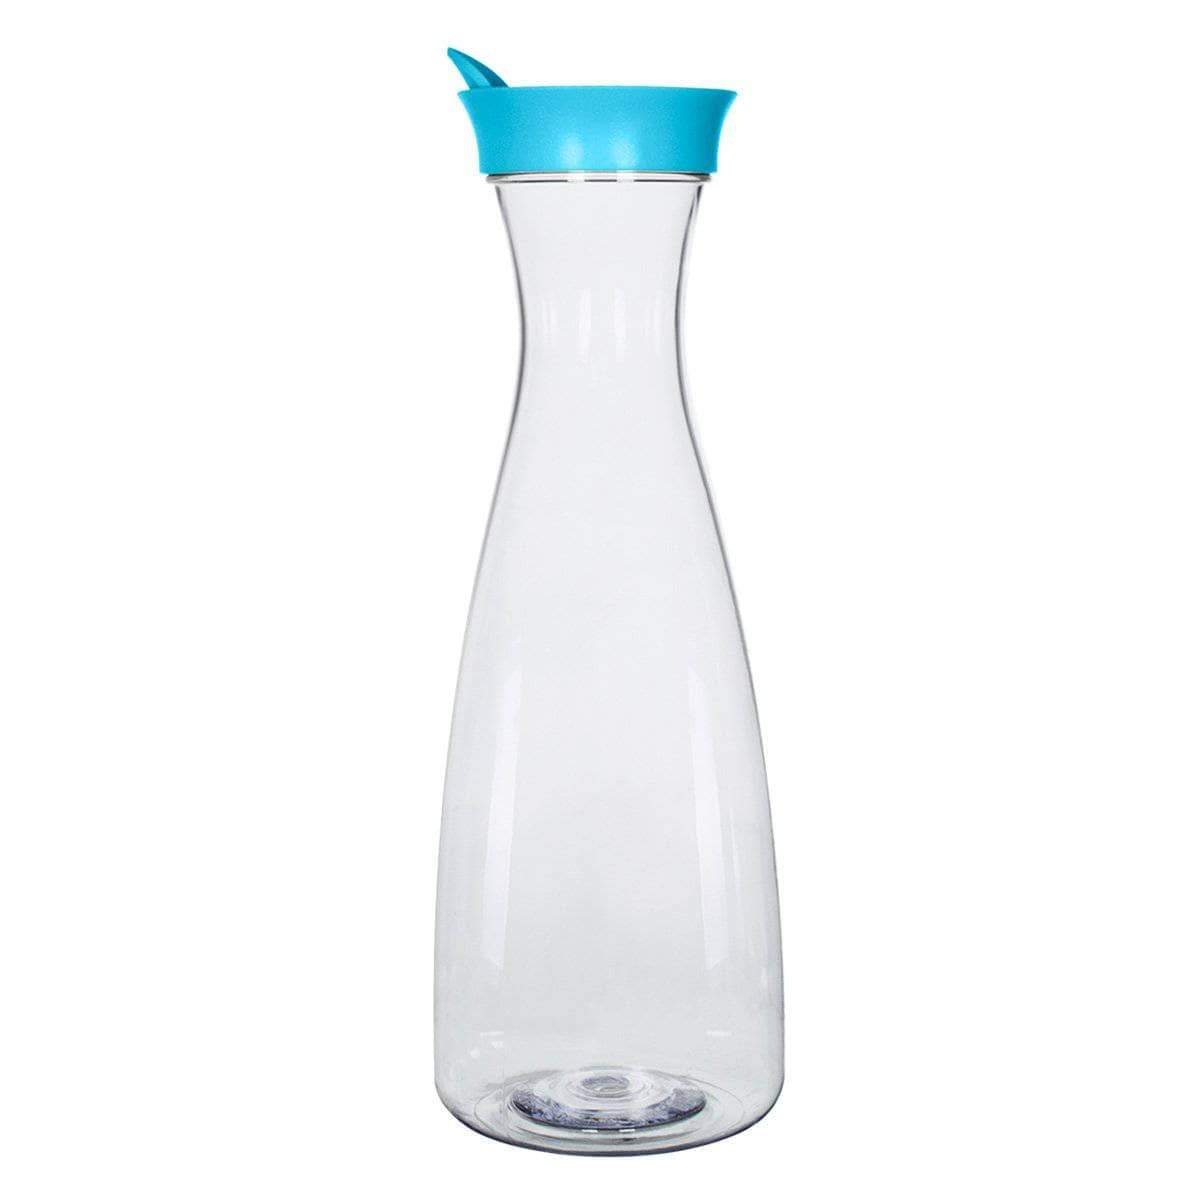 Geo Bottles Pitchers Light Blue 1.5 Liter (50 oz.) BPA FREE Plastic Carafe Pitcher Decanter Jug with Green Lid